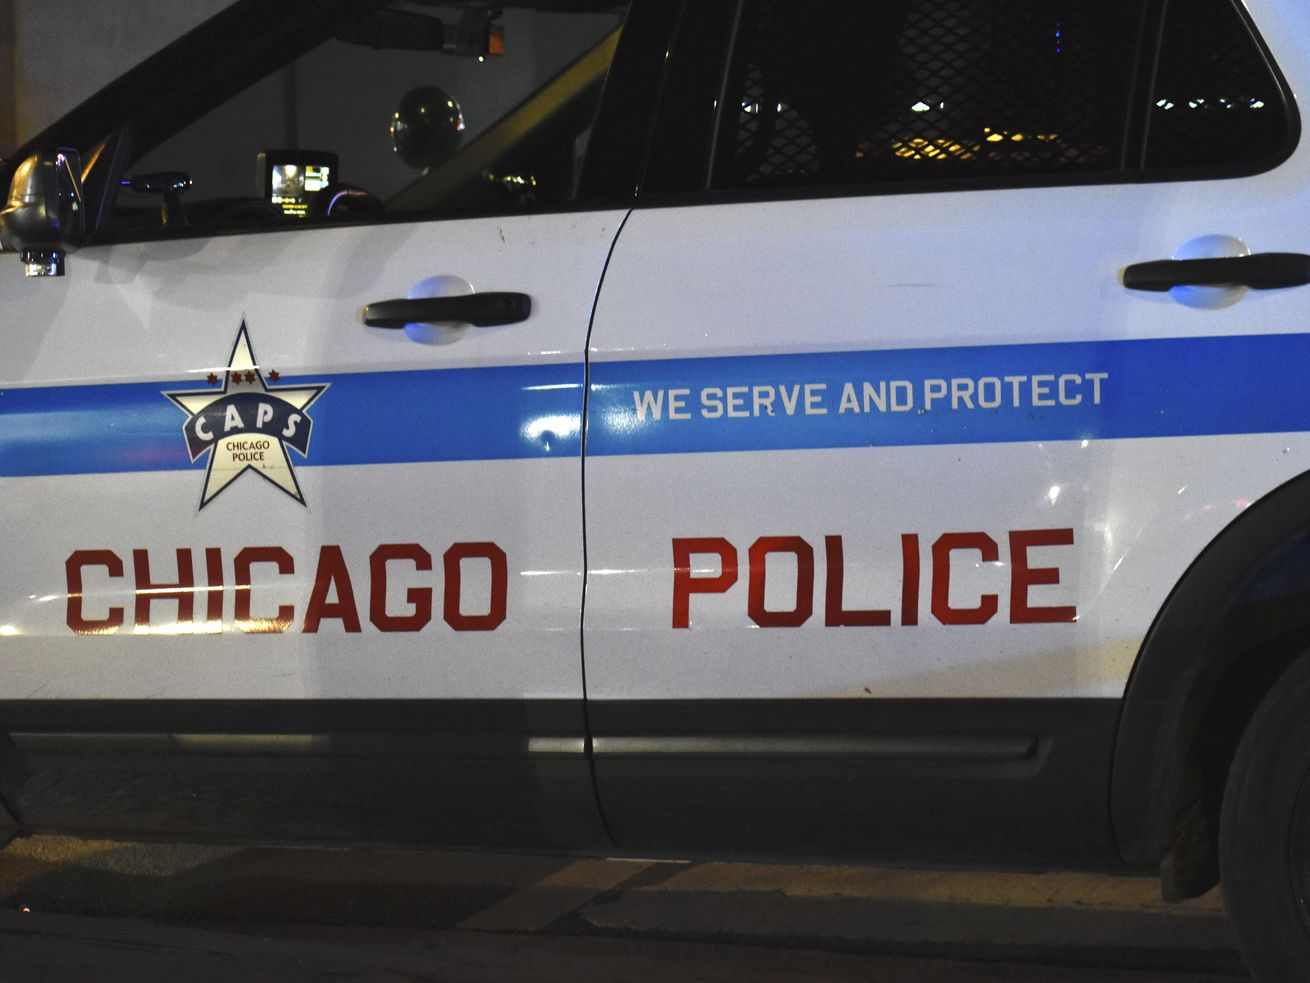 An armed carjacking was reported Jan. 13, 2021, on the Near North Side.